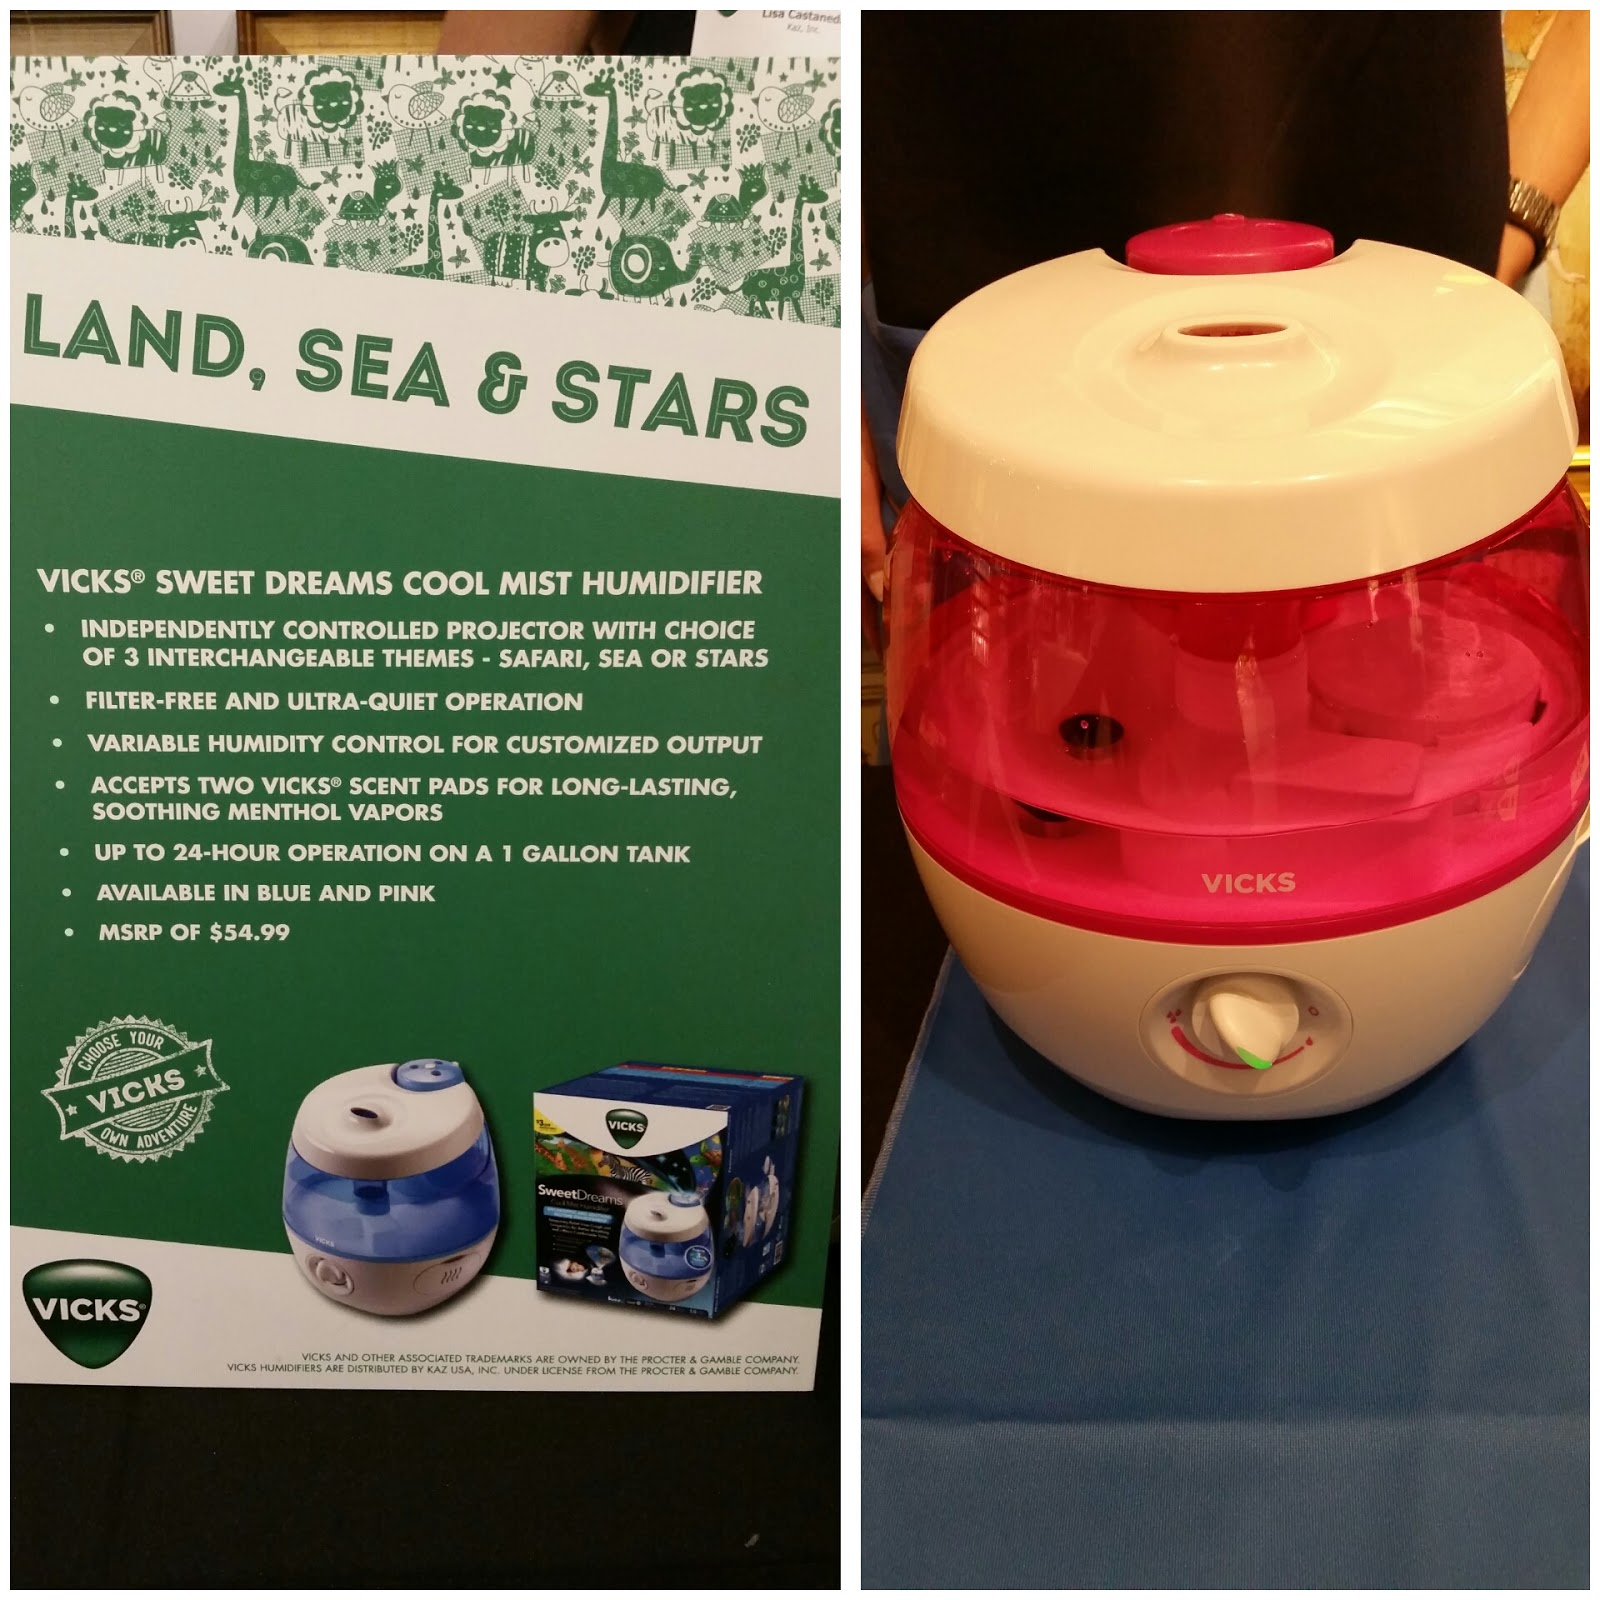 Ones Sleep Easier with the New Vicks Sweet Dreams Humidifier #GIVEAWAY #B01B26